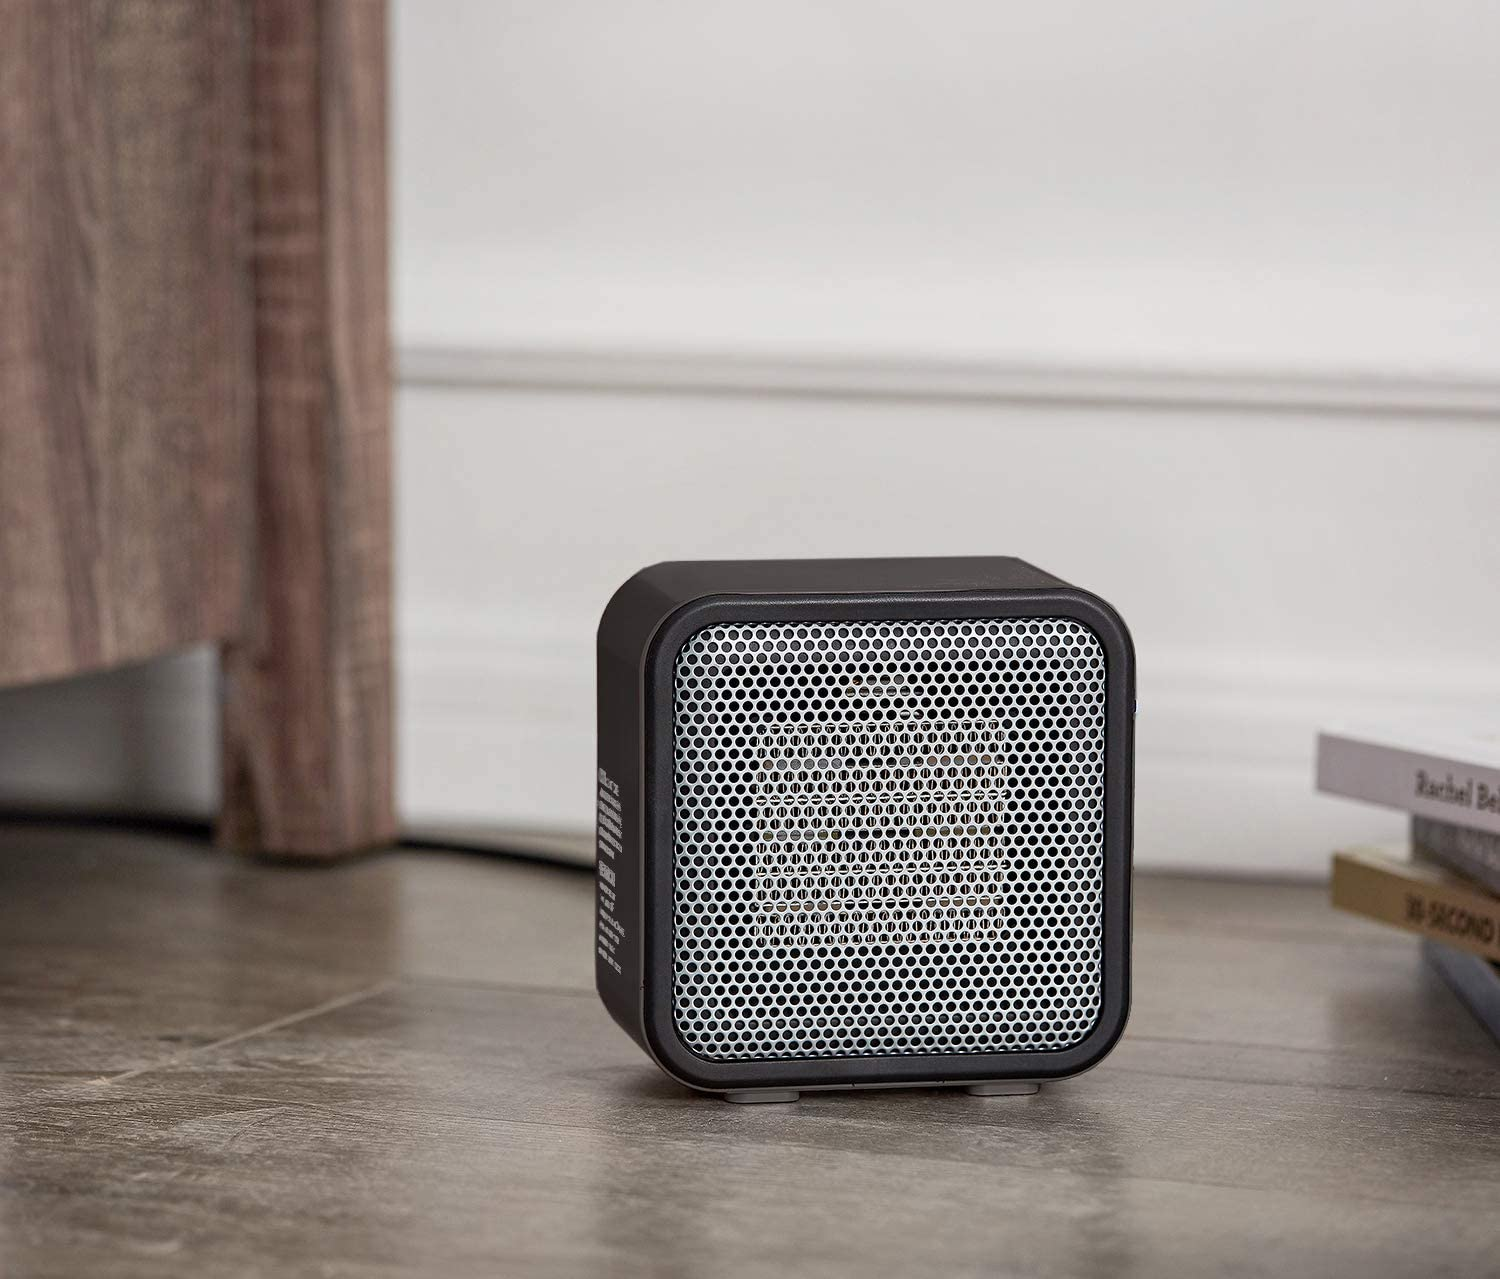 A mini electric heater from Amazon